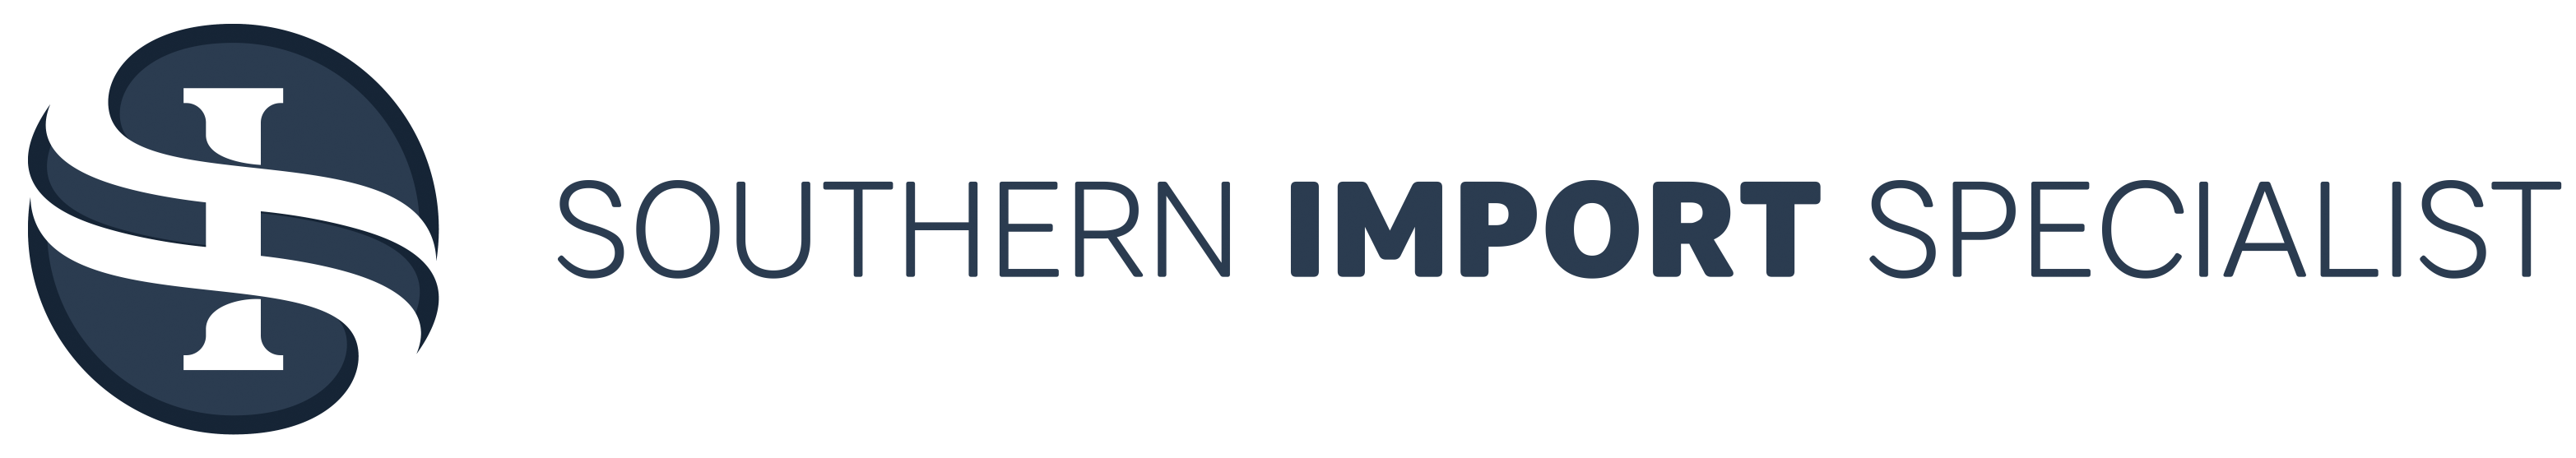 Southern Import Specialist Logo